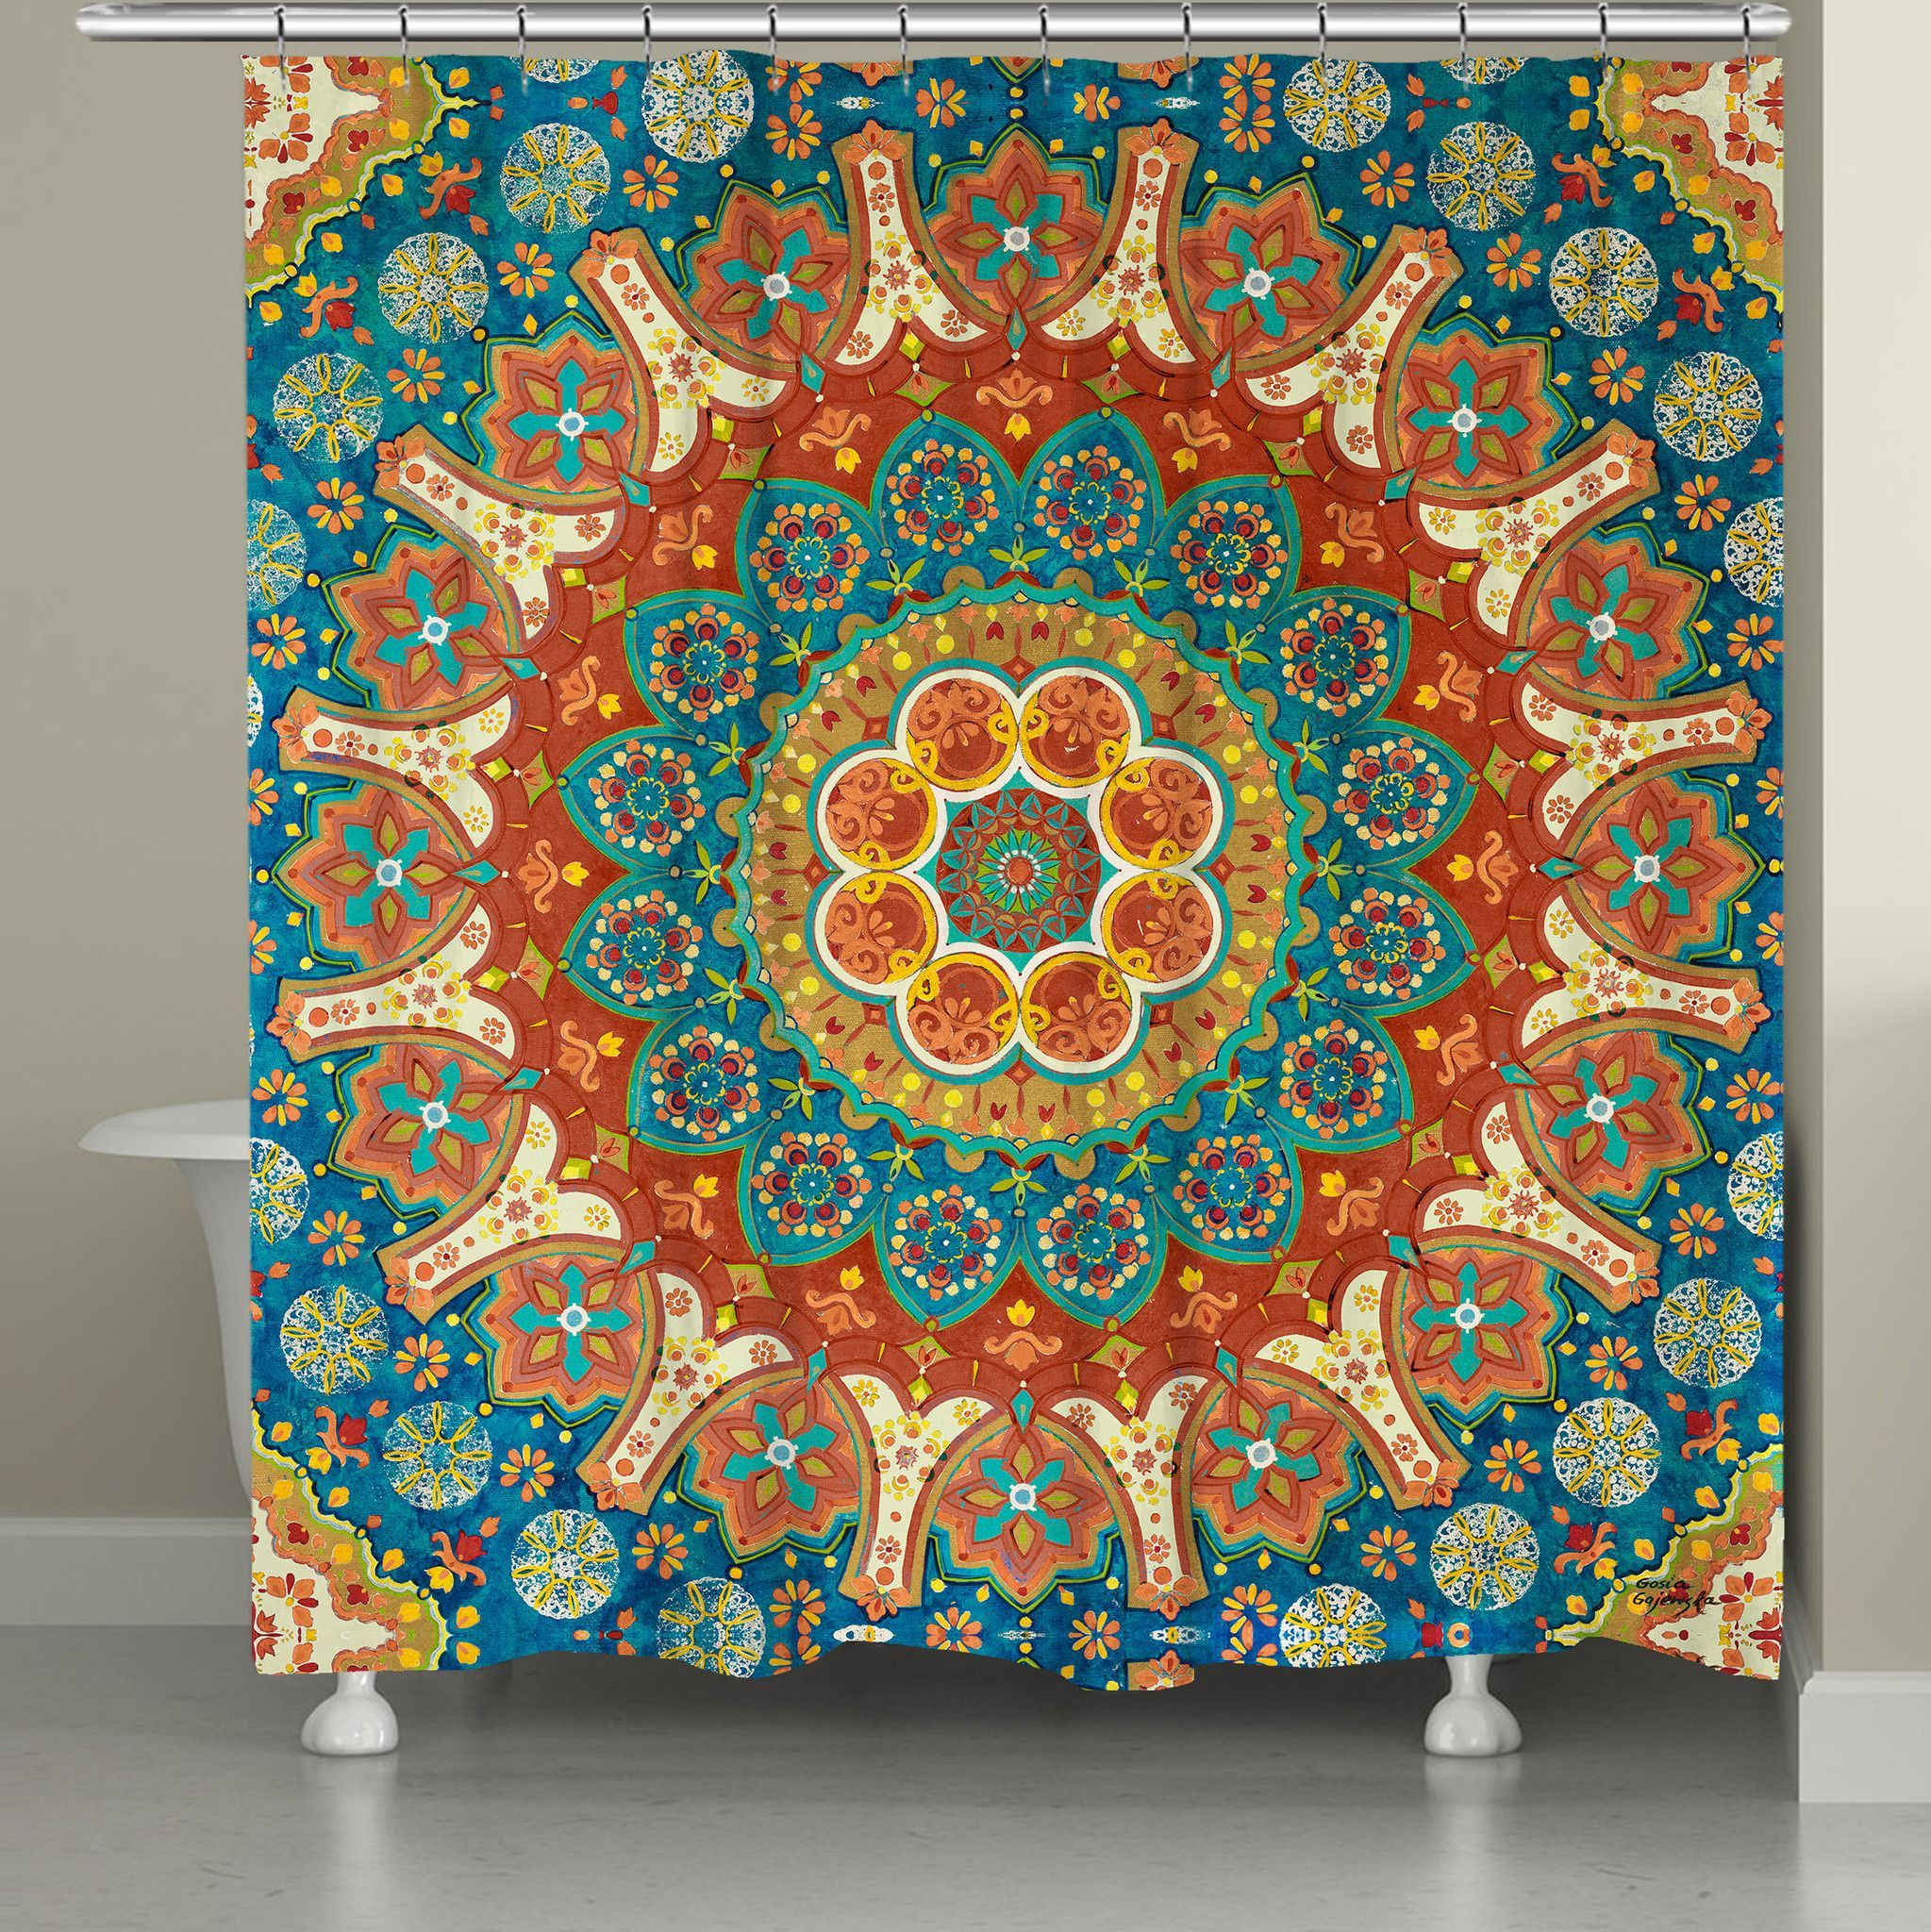 Beautiful Spice Colors And Intricate Designs Make Up The Mandala Shower Curtain All Of Our Products Are Digitally Printed To Create Crisp